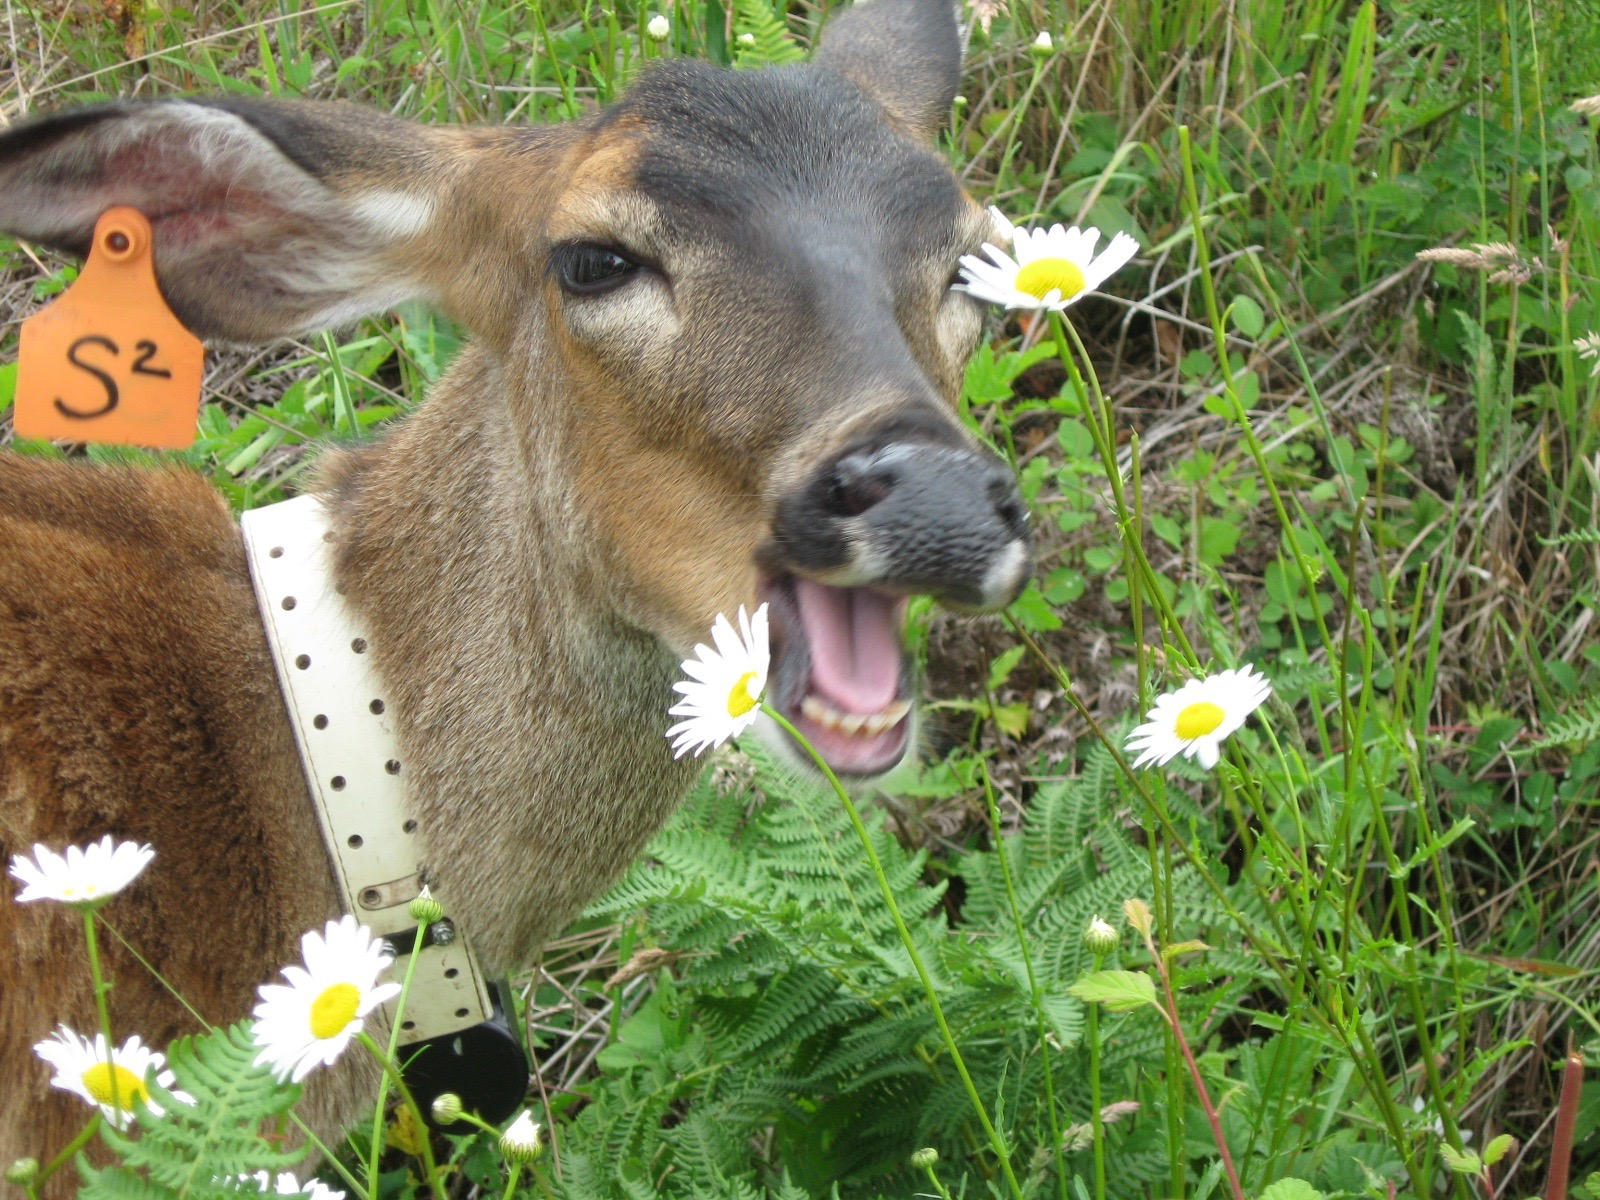 A deer tagged and collared with its mouth open in a field.